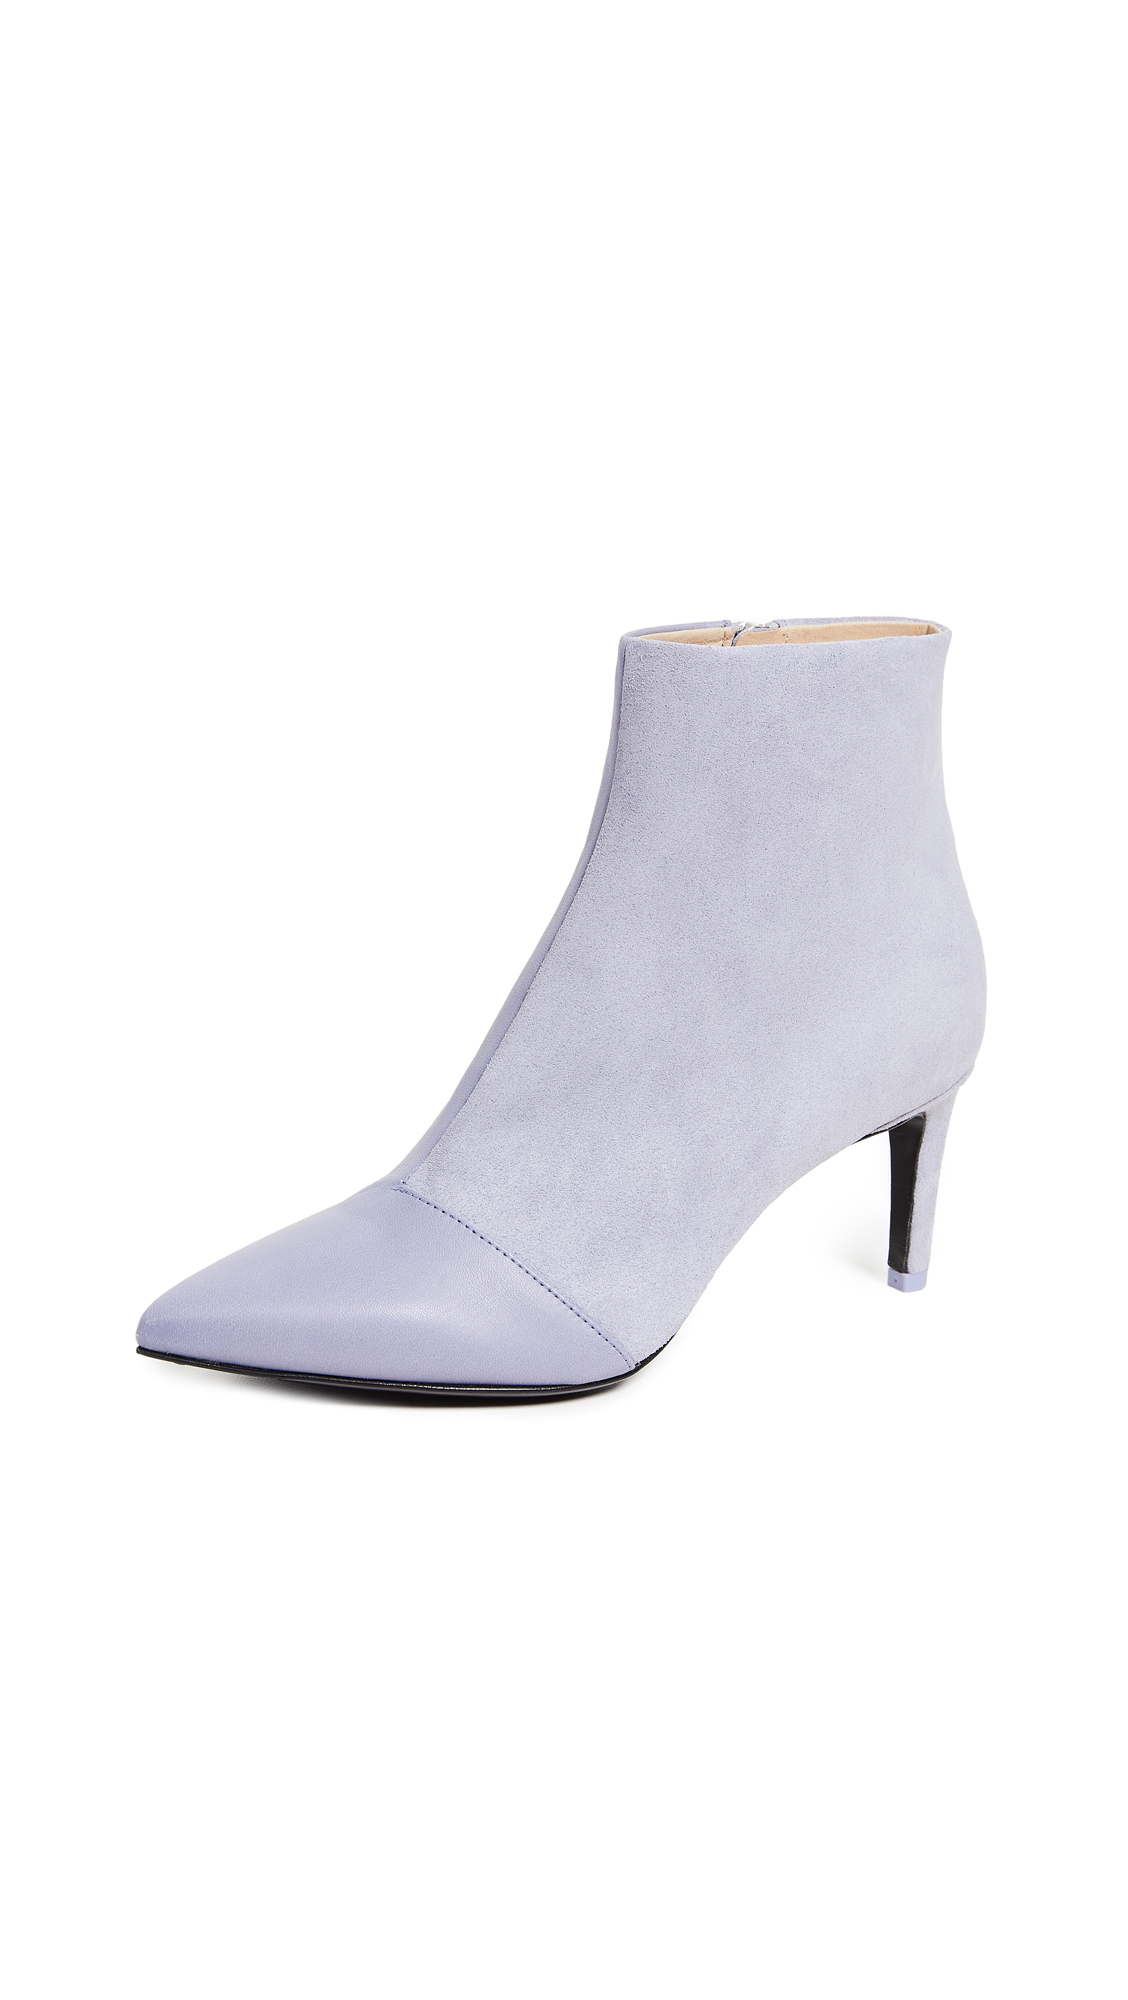 Rag & Bone Beha Booties - Lilac